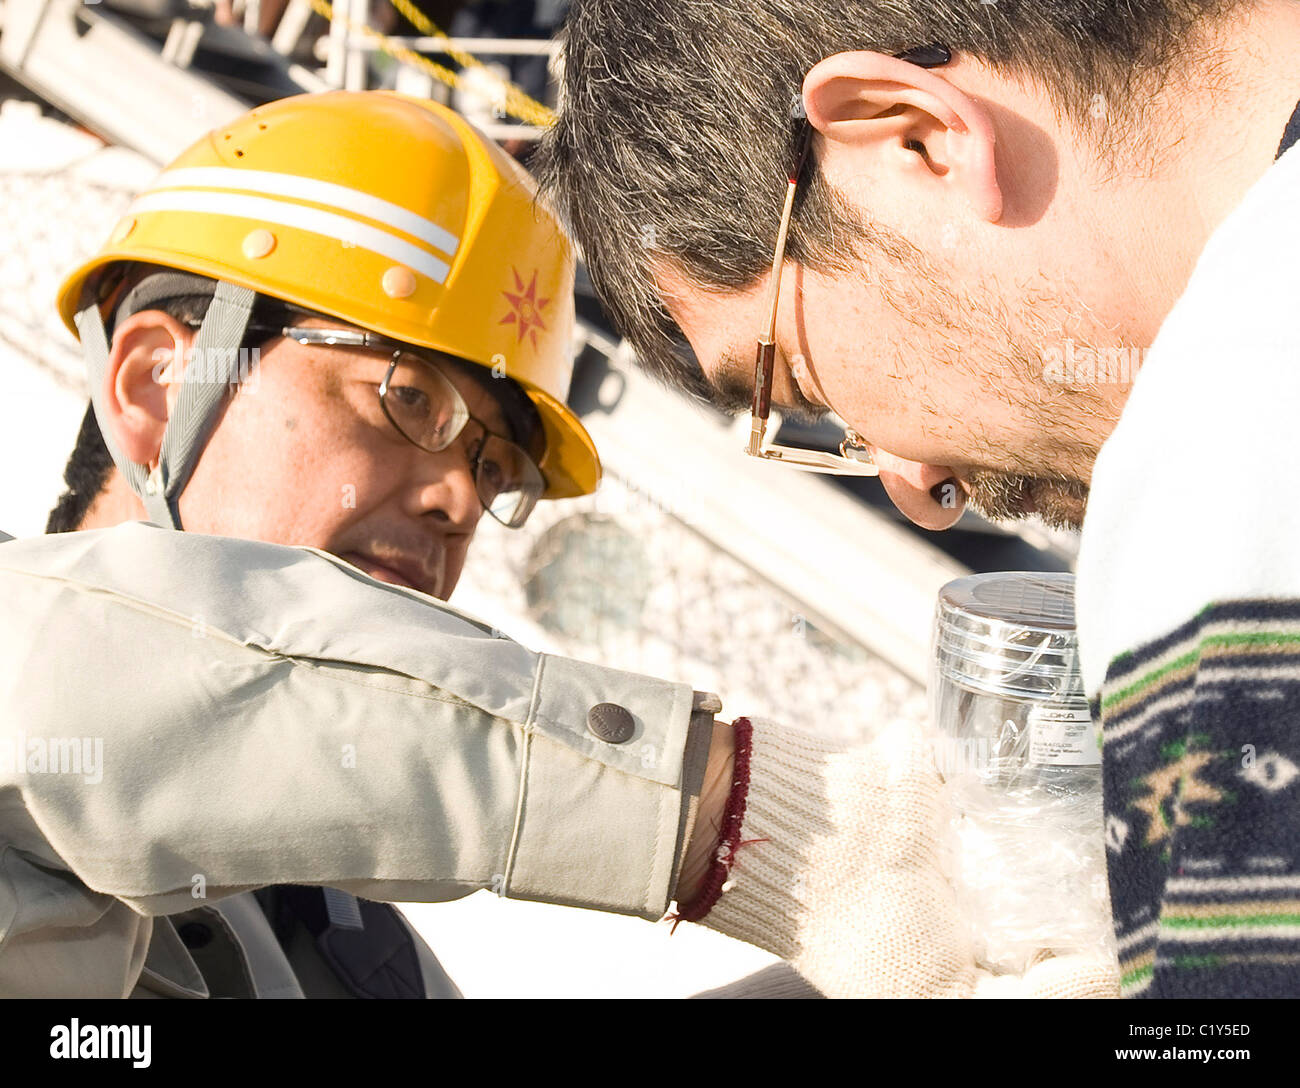 A member of the so-called Fukushima 50 is given a radiation check prior to boarding the Kaiwomaru - Stock Image